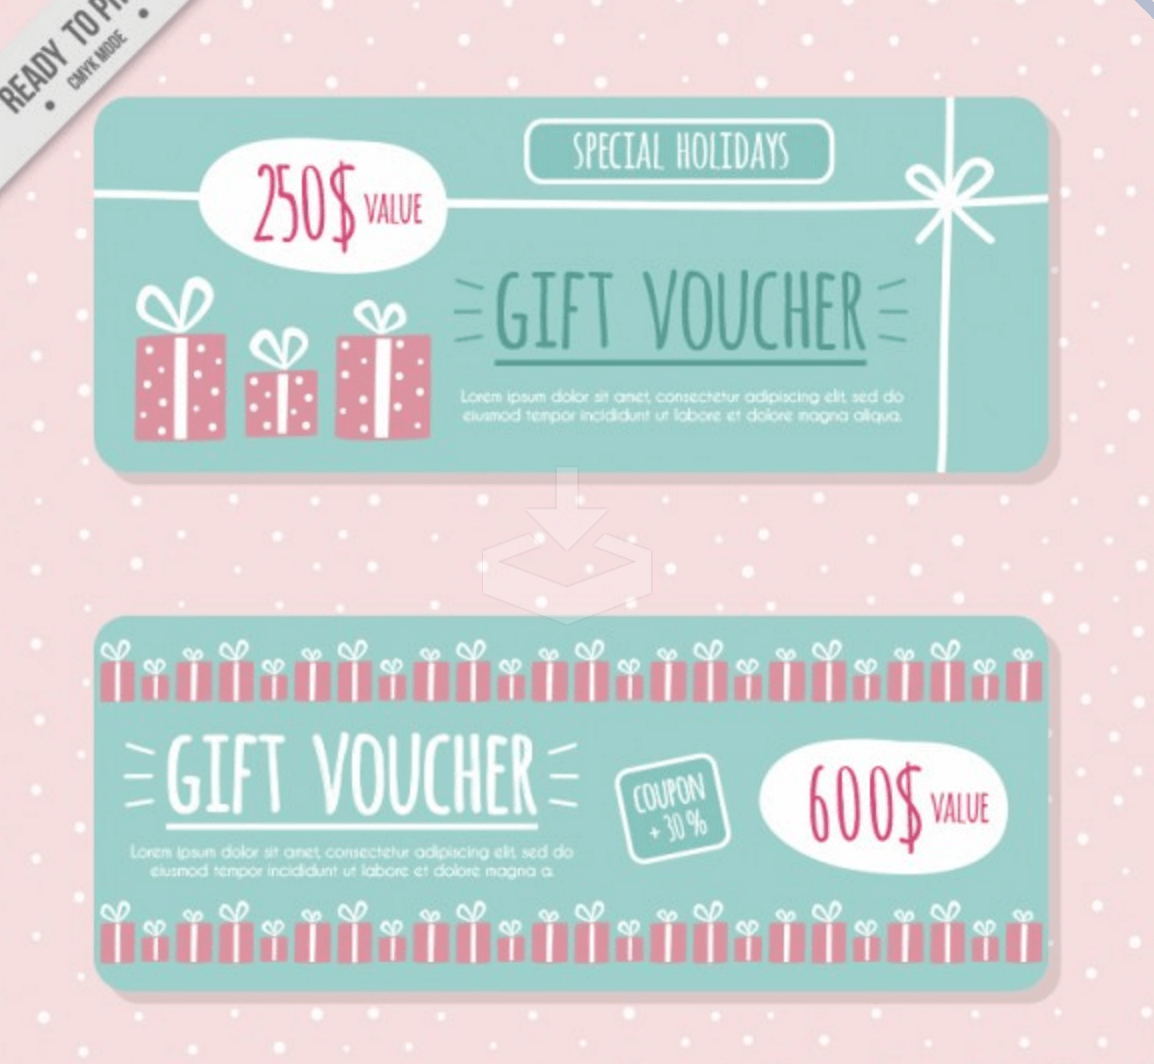 Artistic Coupon and Gift Voucher Banners